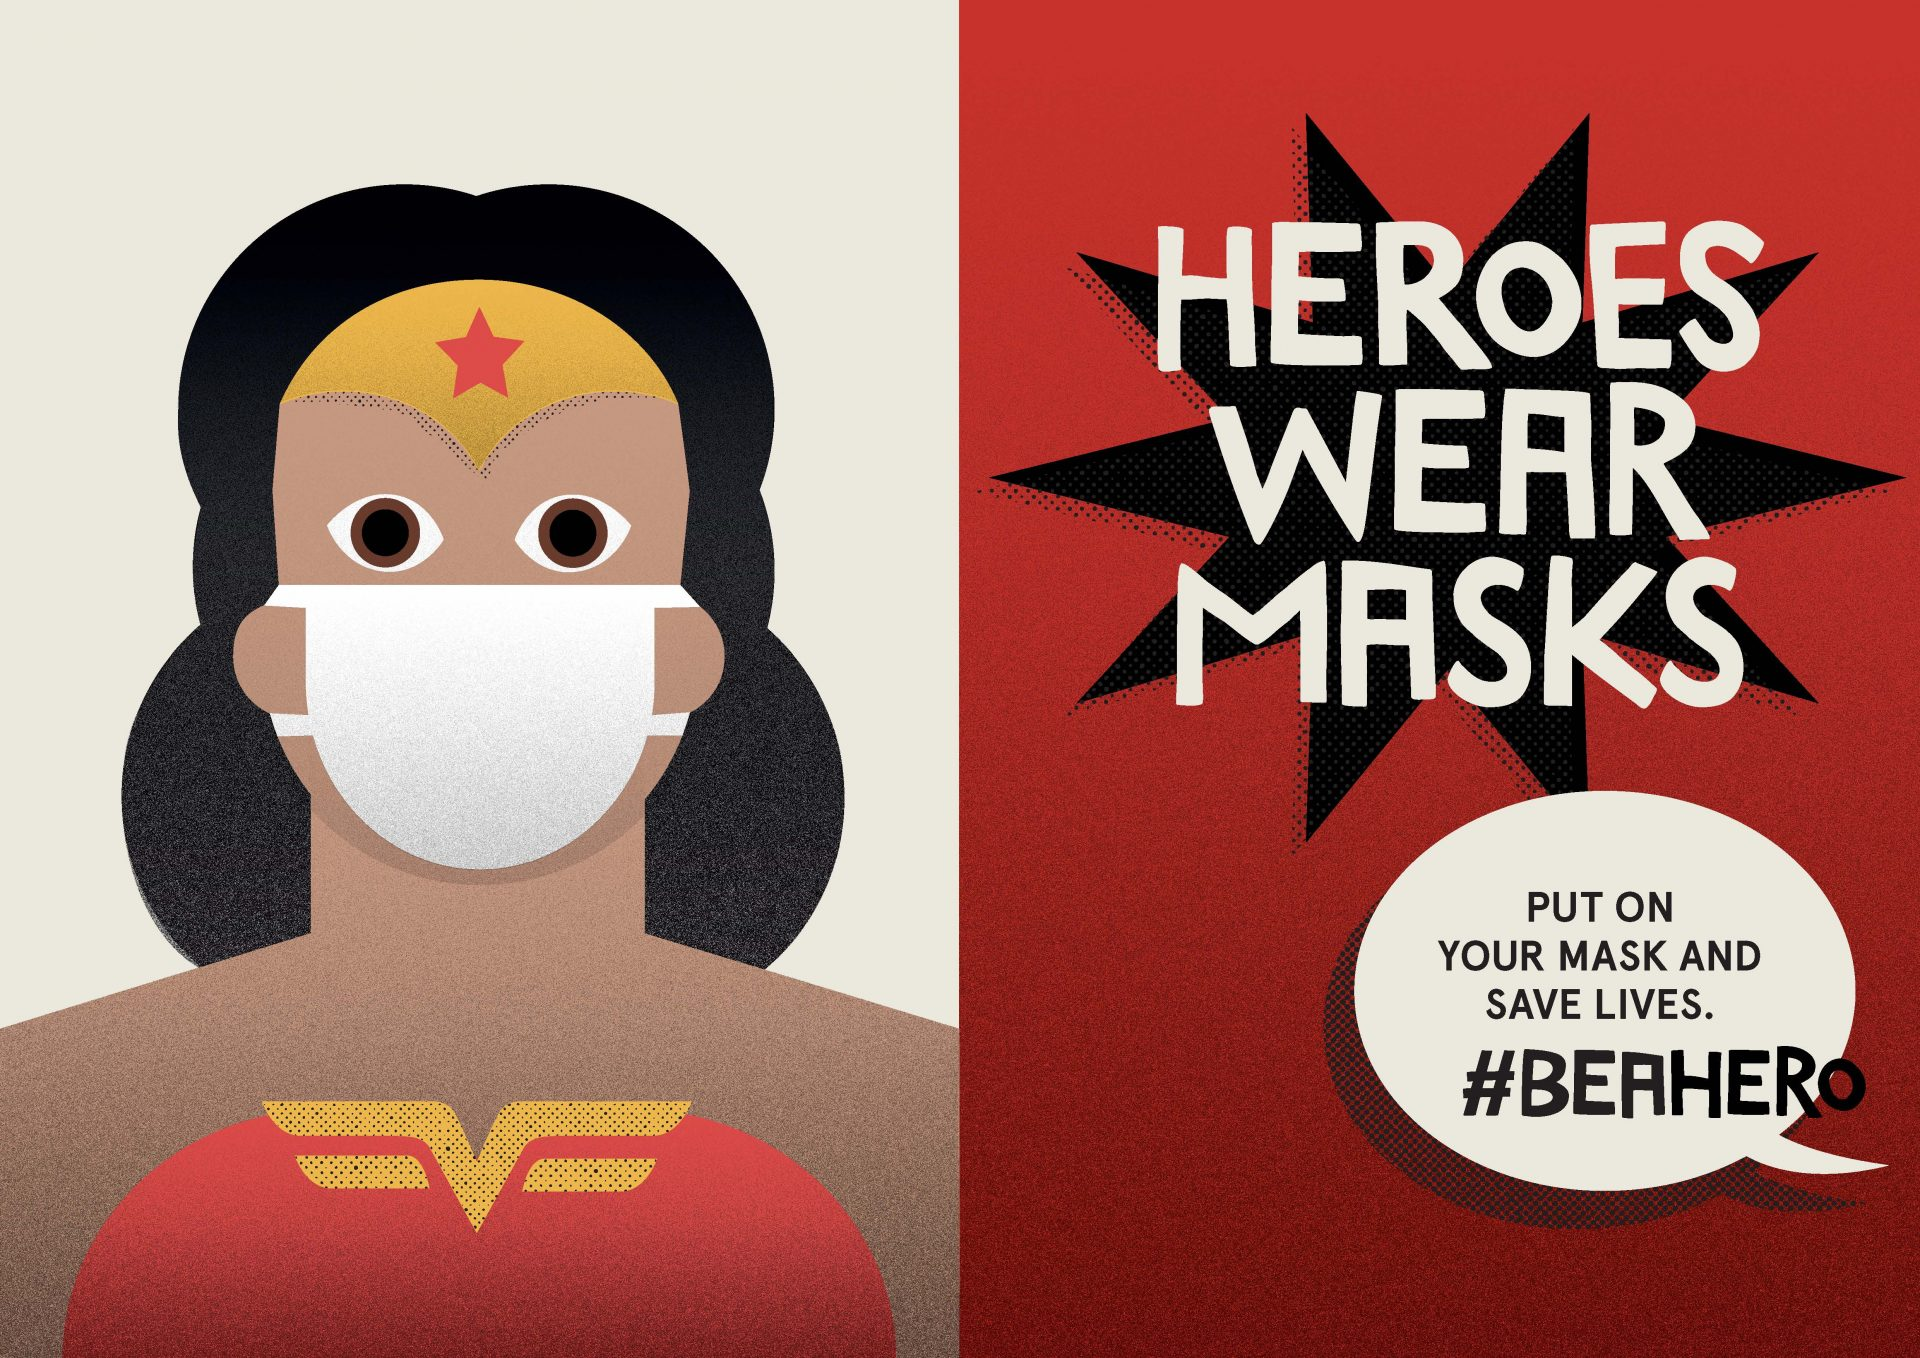 Heroes wear masks. Wonder woman.